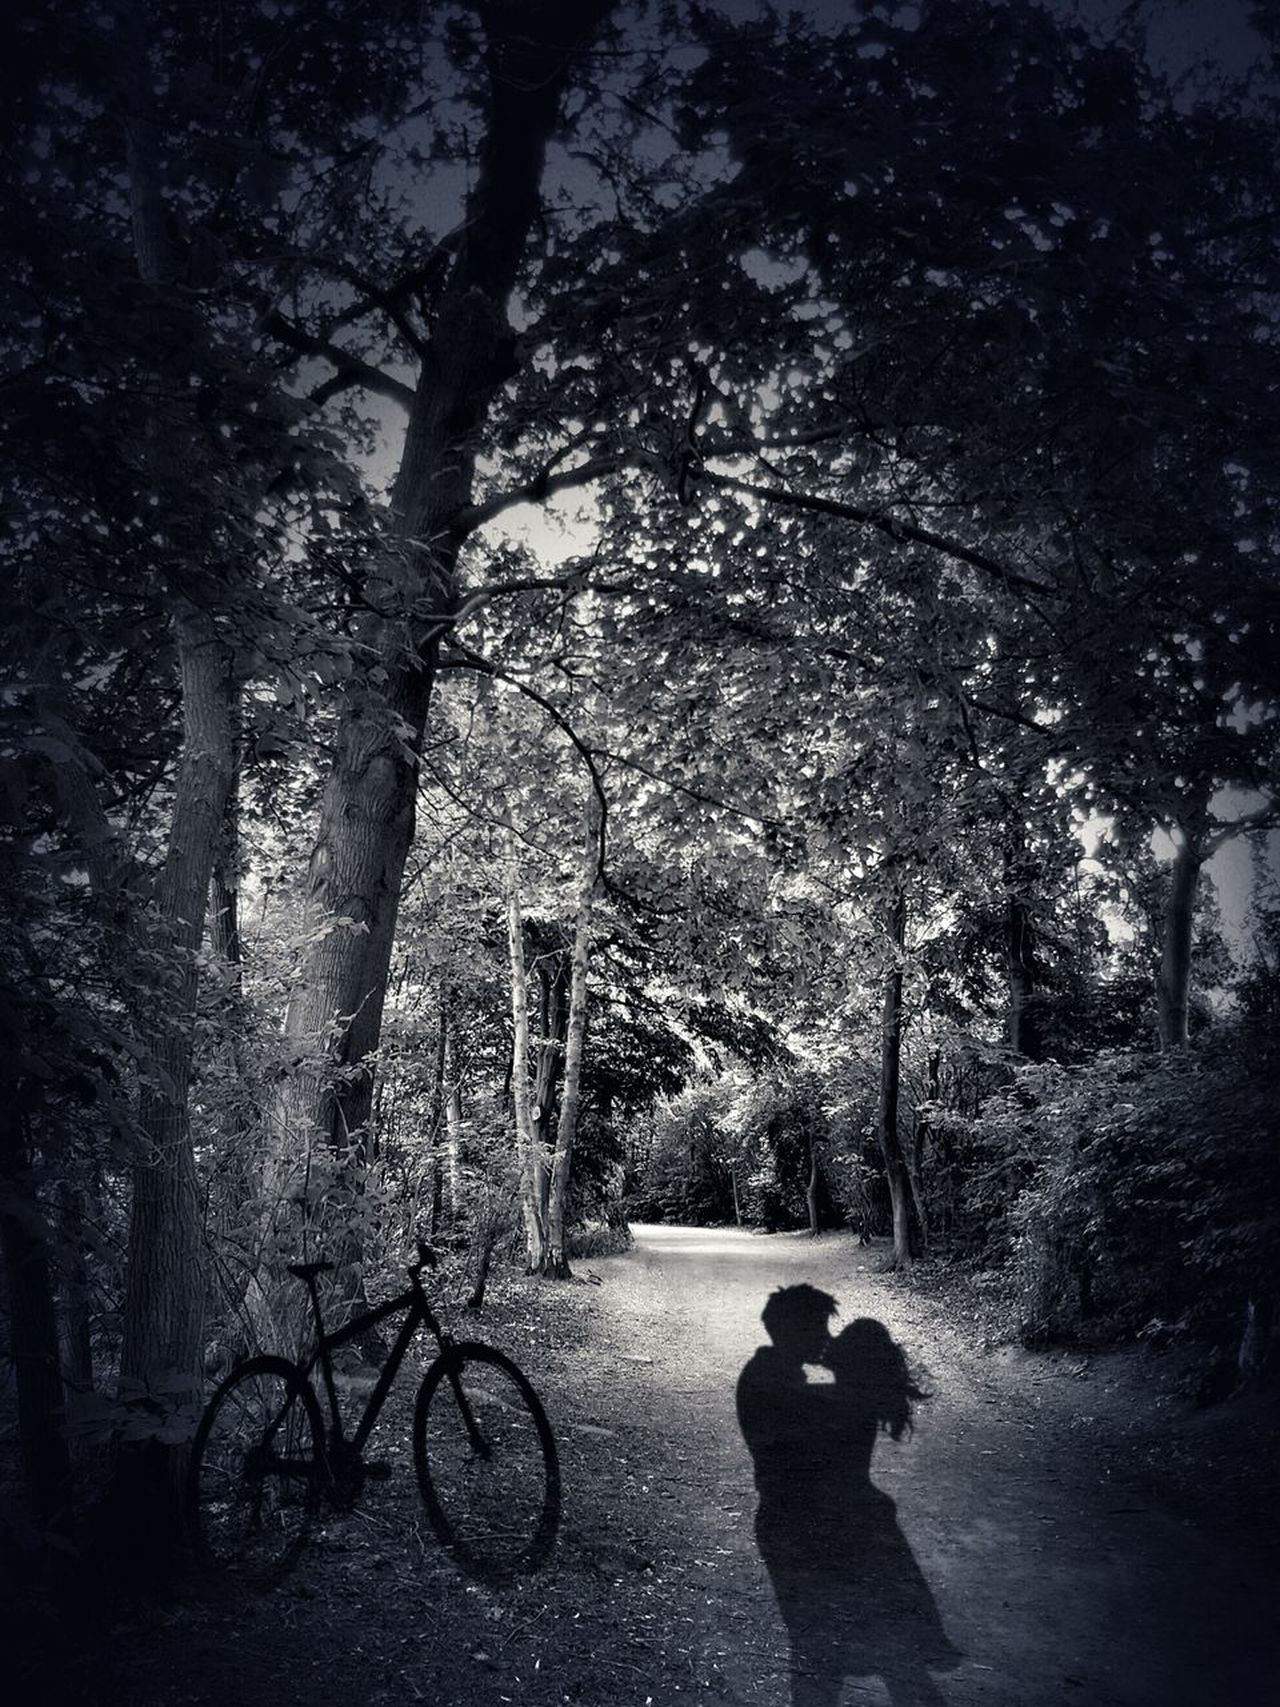 Let me tell you a little story.... 😉Live For The Story Summerlove Forbidden Love Bicycle Real People Tree Two People Silhouette Shadow Outdoors Sky People Nature Photography The Great Outdoors - 2017 EyeEm Awards EyeEmNewHere The Photojournalist - 2017 EyeEm Awards Place Of Heart Story Storytelling Blackandwhite Blackandwhite Photography EyeEm Best Edits The Portraitist - 2017 EyeEm Awards No Color Love The Street Photographer - 2017 EyeEm Awards Let's Go. Together.